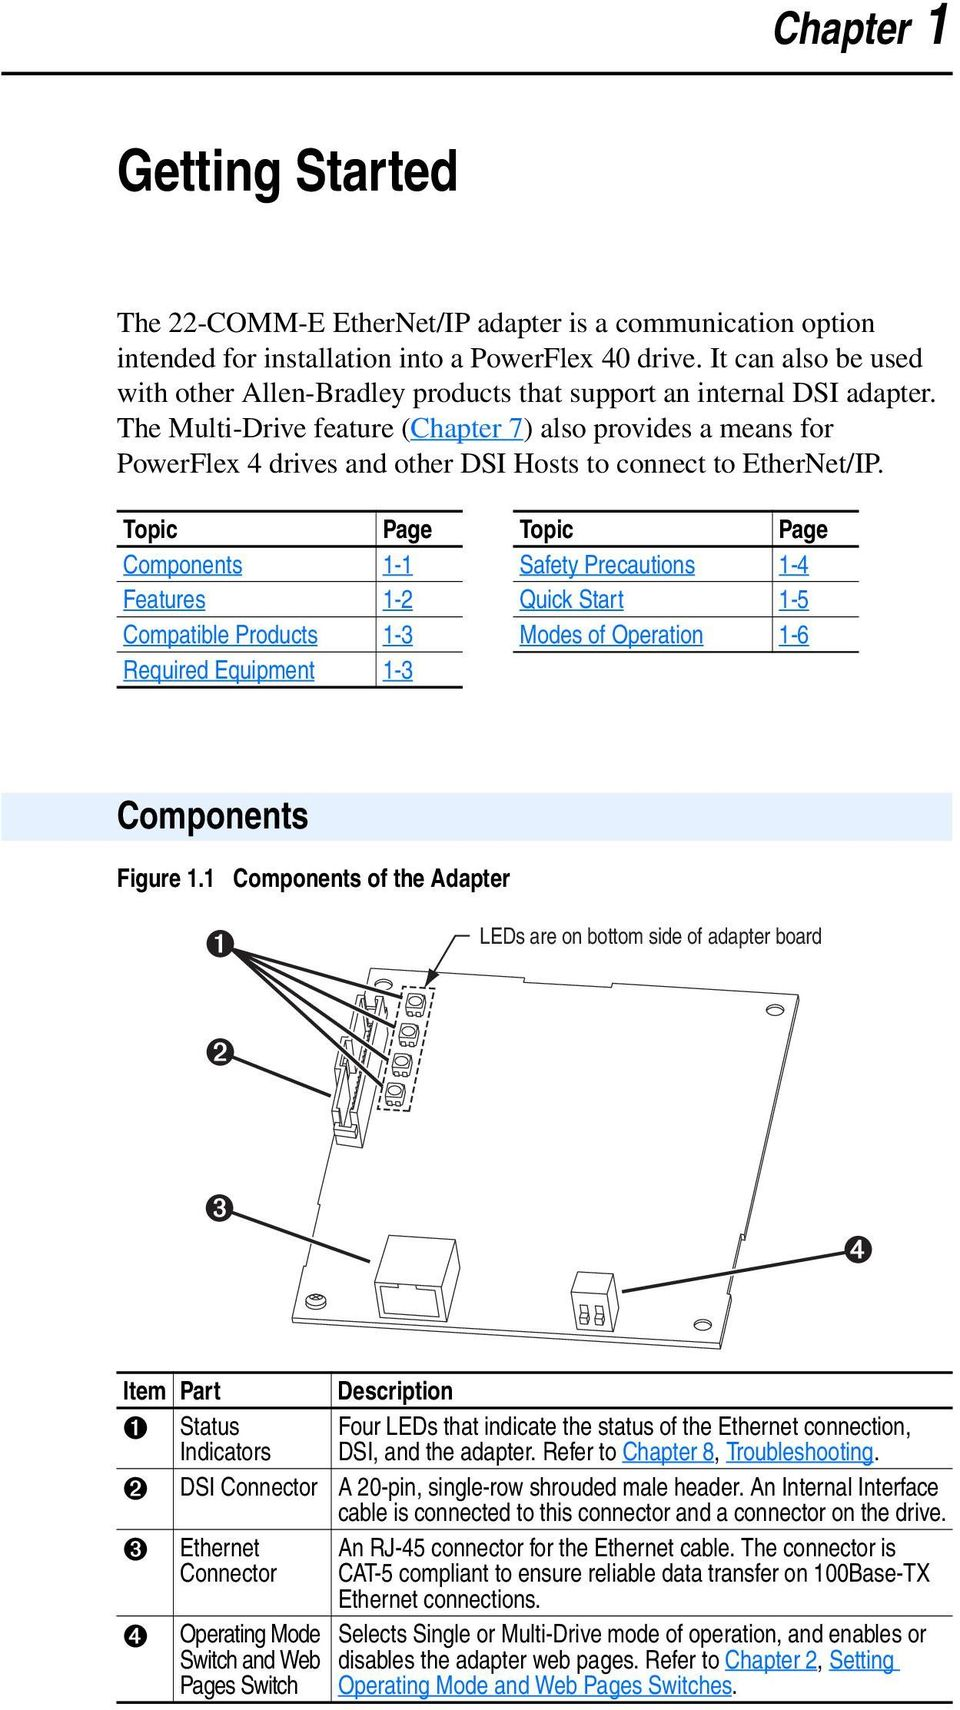 ethernet ip adapter 22 comm e frn 1 xxx user manual pdf fuse diagram for 2001 bmw 325ci the multi drive feature (chapter 7) also provides a means for powerflex 4